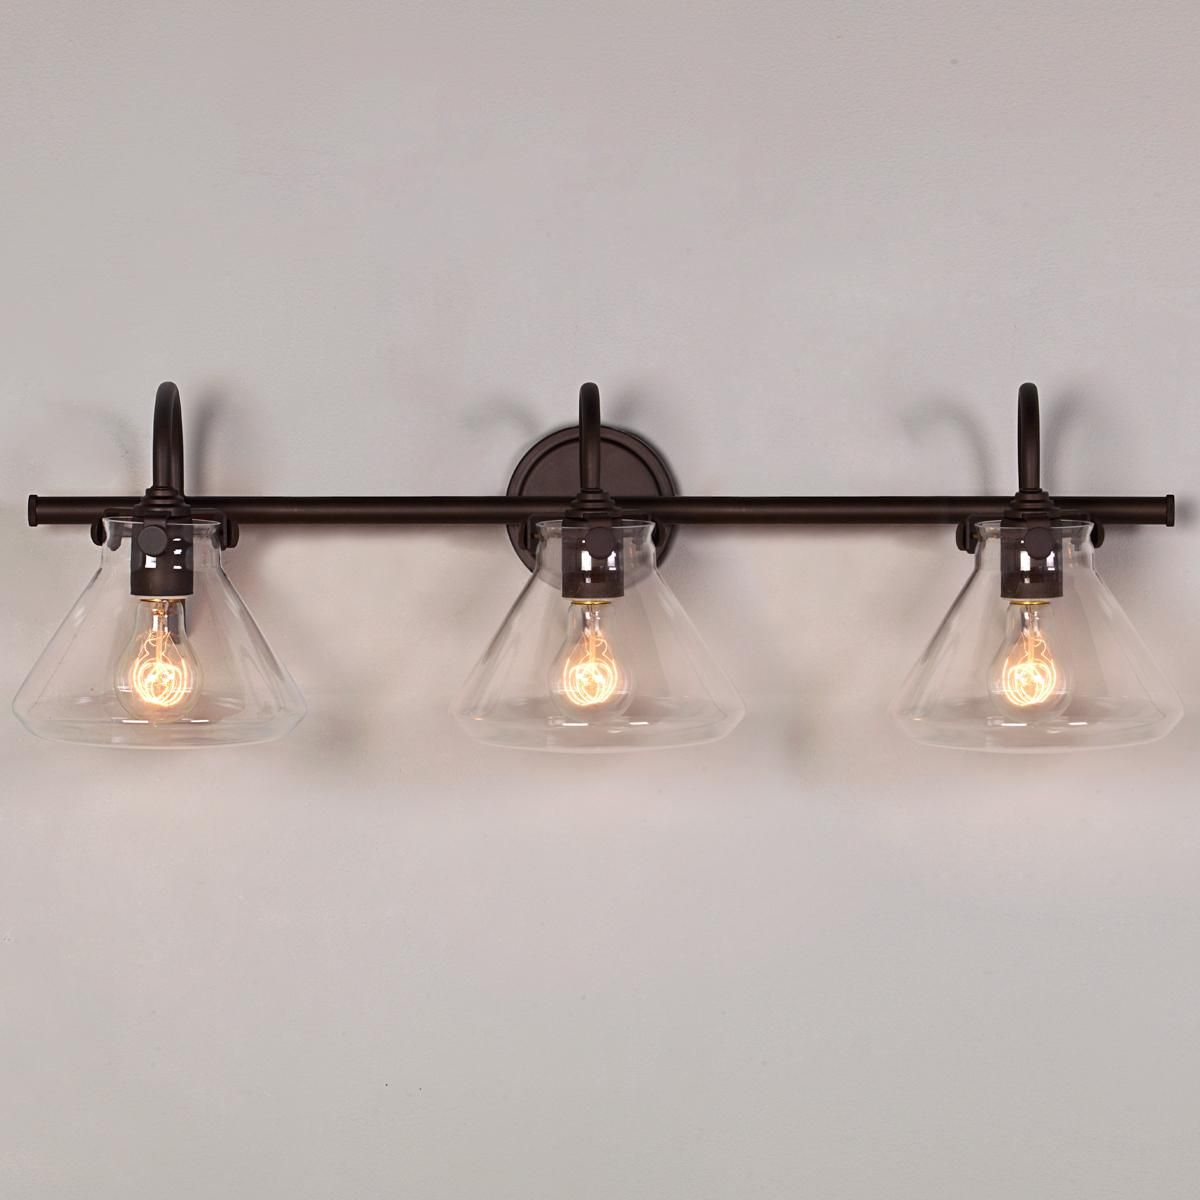 Industrial Style Bathroom Light Fixtures Best 25 43 Modern Bathroom Light Fixtures Ideas On Pinterest